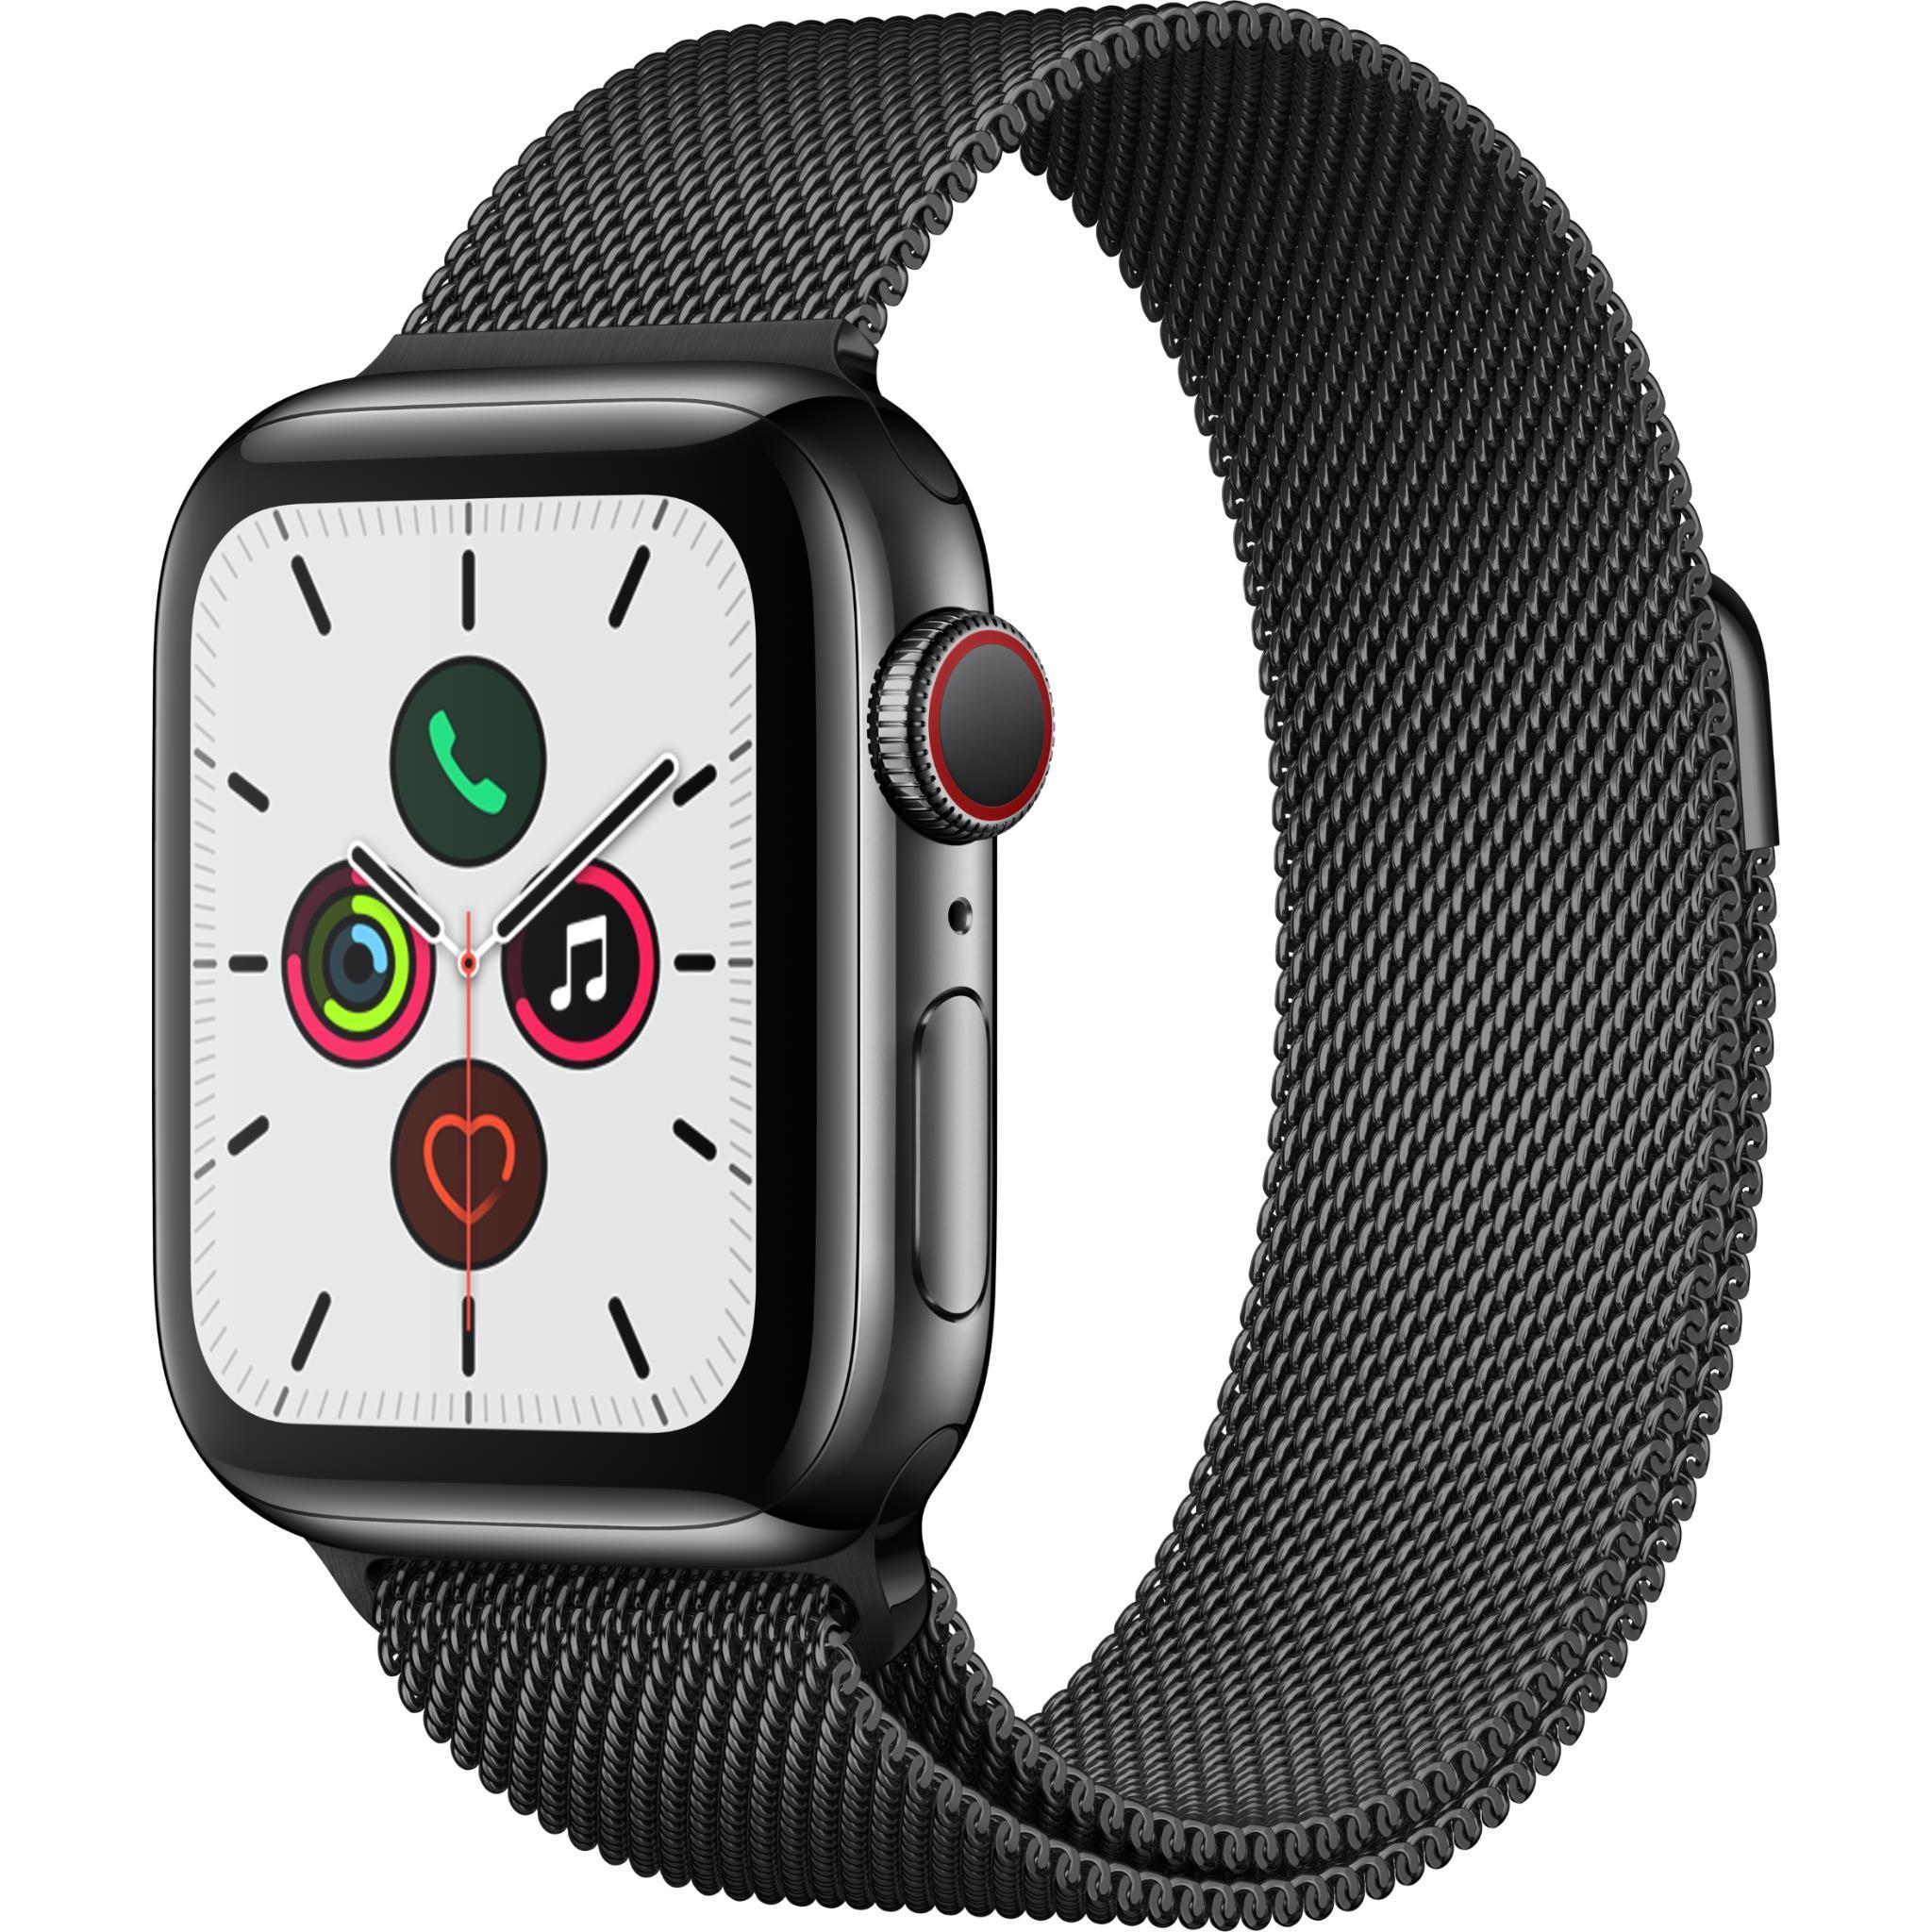 Apple Watch Series 5 40mm Space Black Stainless Steel with Milanese Loop GPS + Cellular